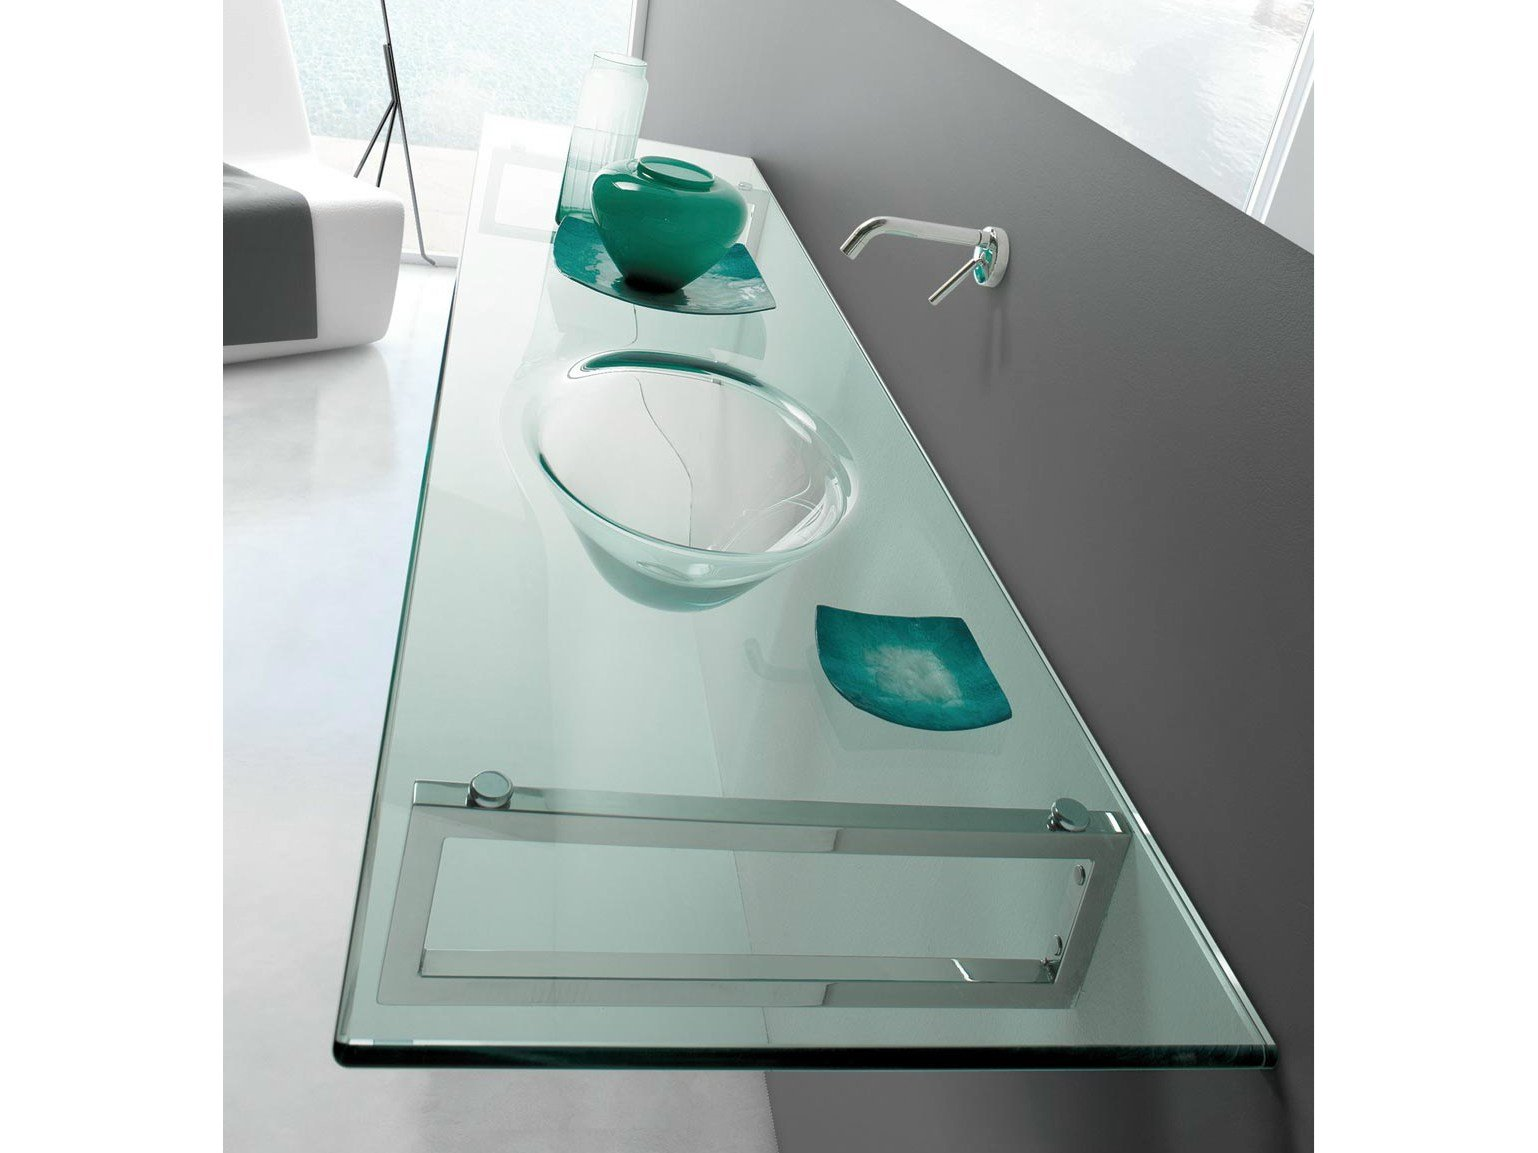 Tiffany lavabo con encimera by lasa idea for Lavabos de cristal